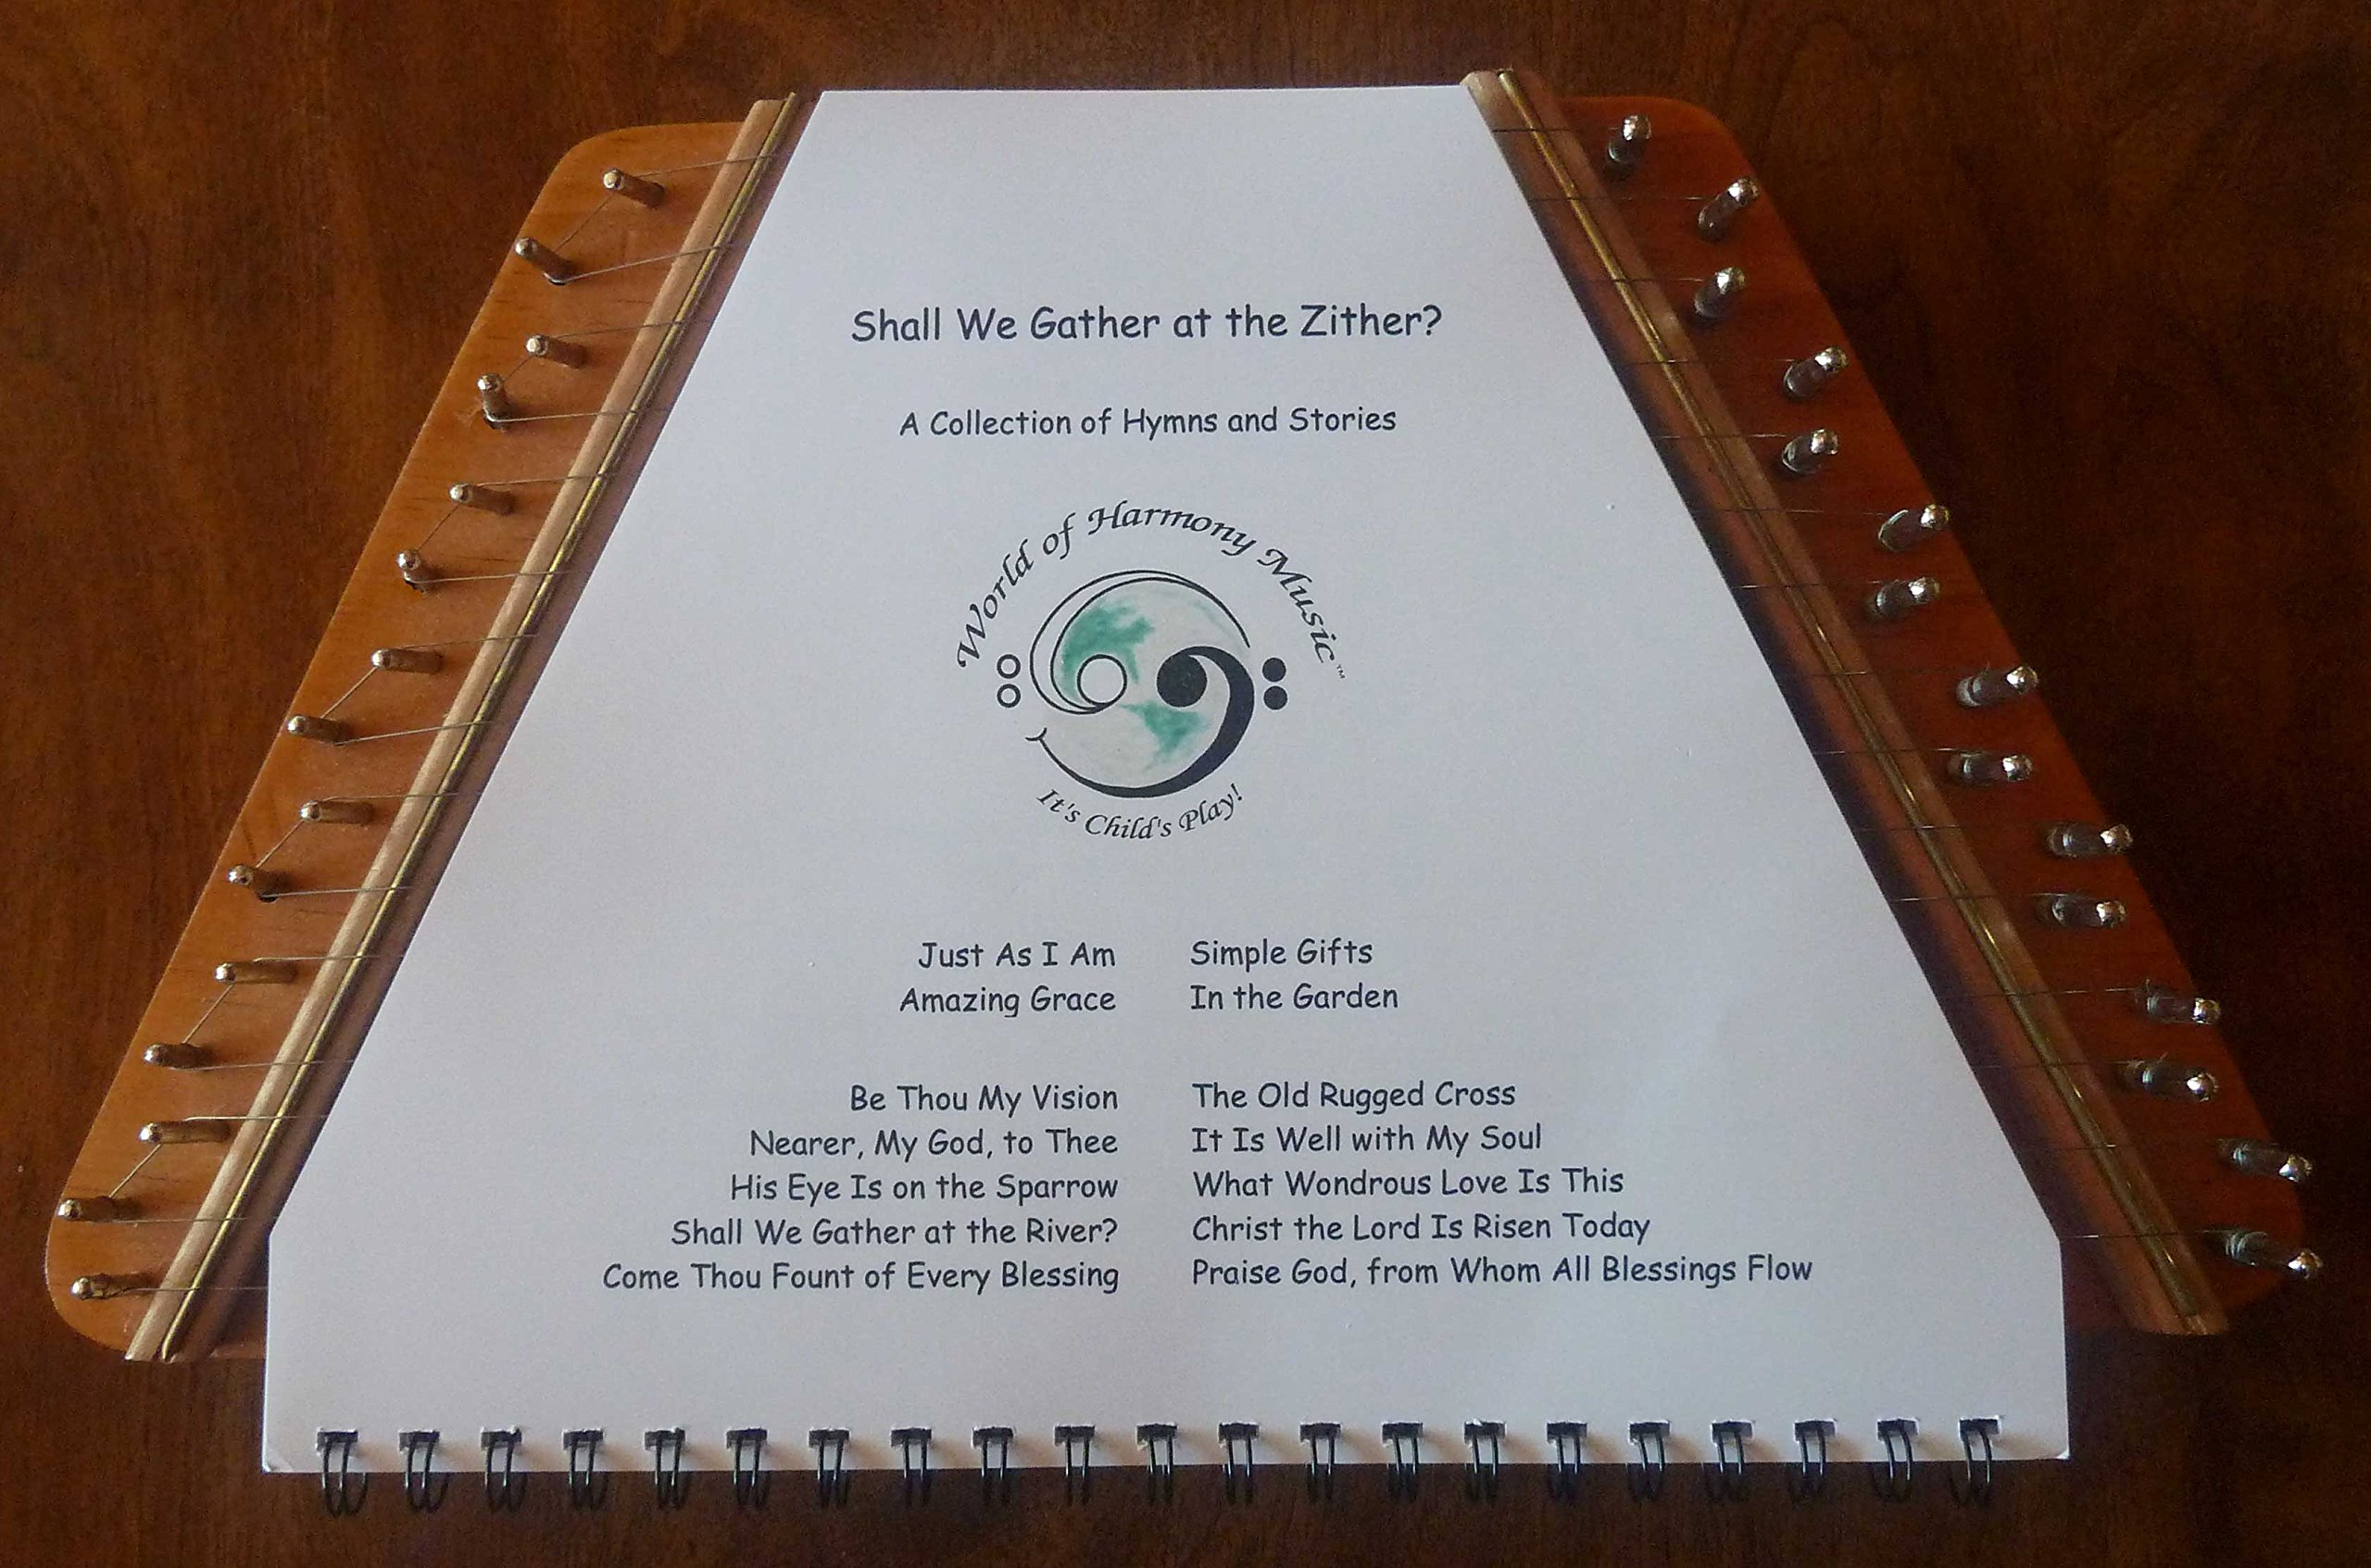 World of Harmony Music; Shall We Gather at the Zither? ~ A Collection of Hymns and Stories Arranged for Zither